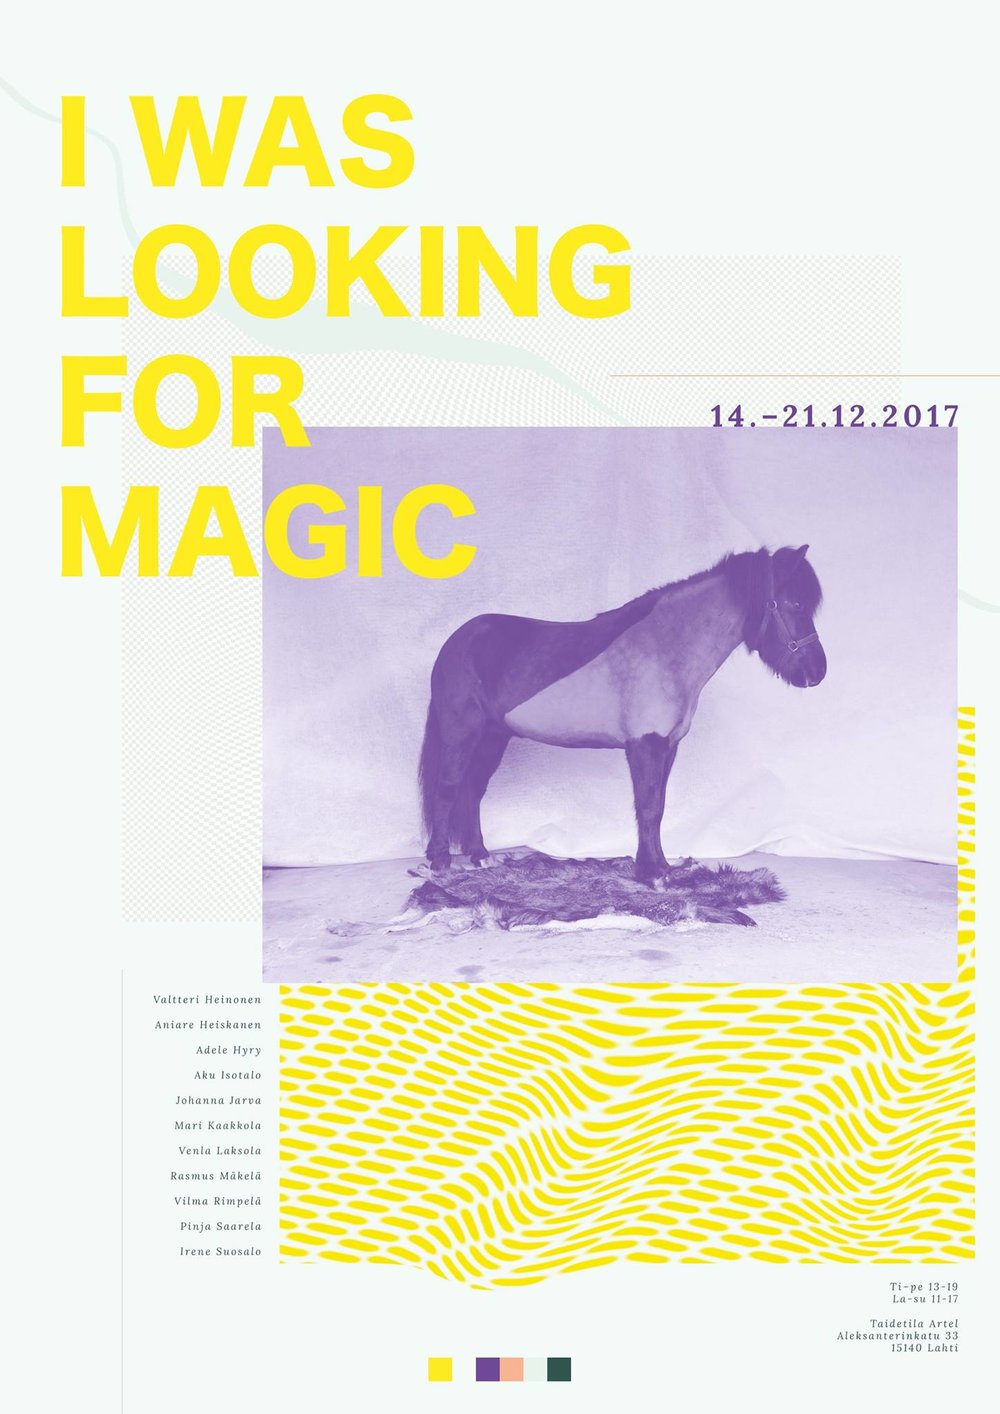 I Was Looking For Magic   Exhibition @ Taidetila Artel, Lahti 14.12 - 22.12.2017  Opening: Thursday 14.12. at 18:00  Facebook event:  I Was Looking For Magic